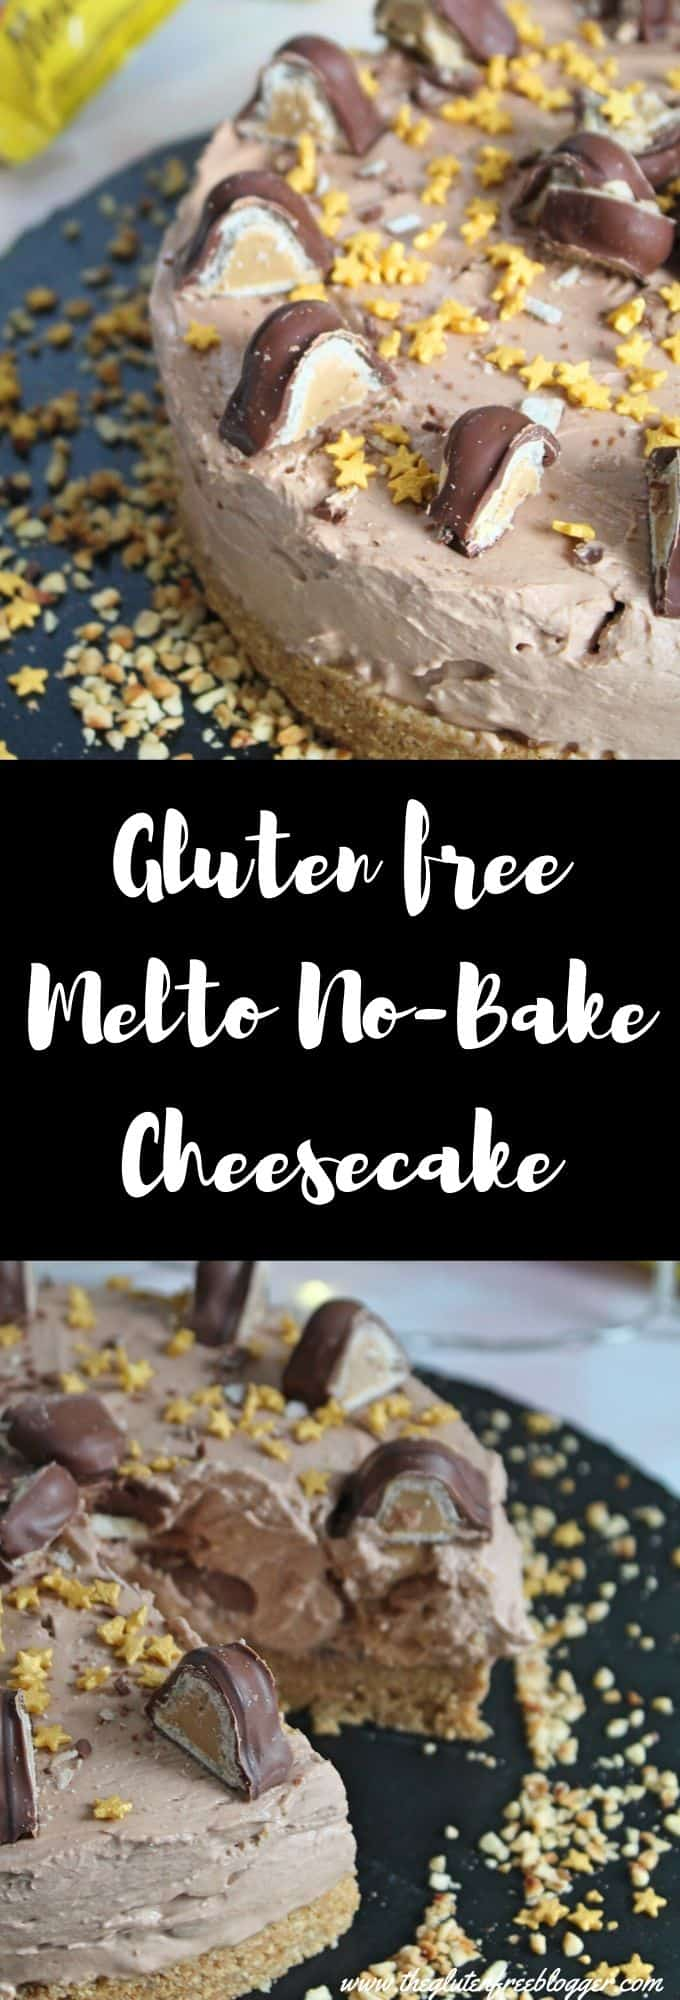 gluten free melto cheesecake recipe easy no bake cheesecake christmas dessert ideas